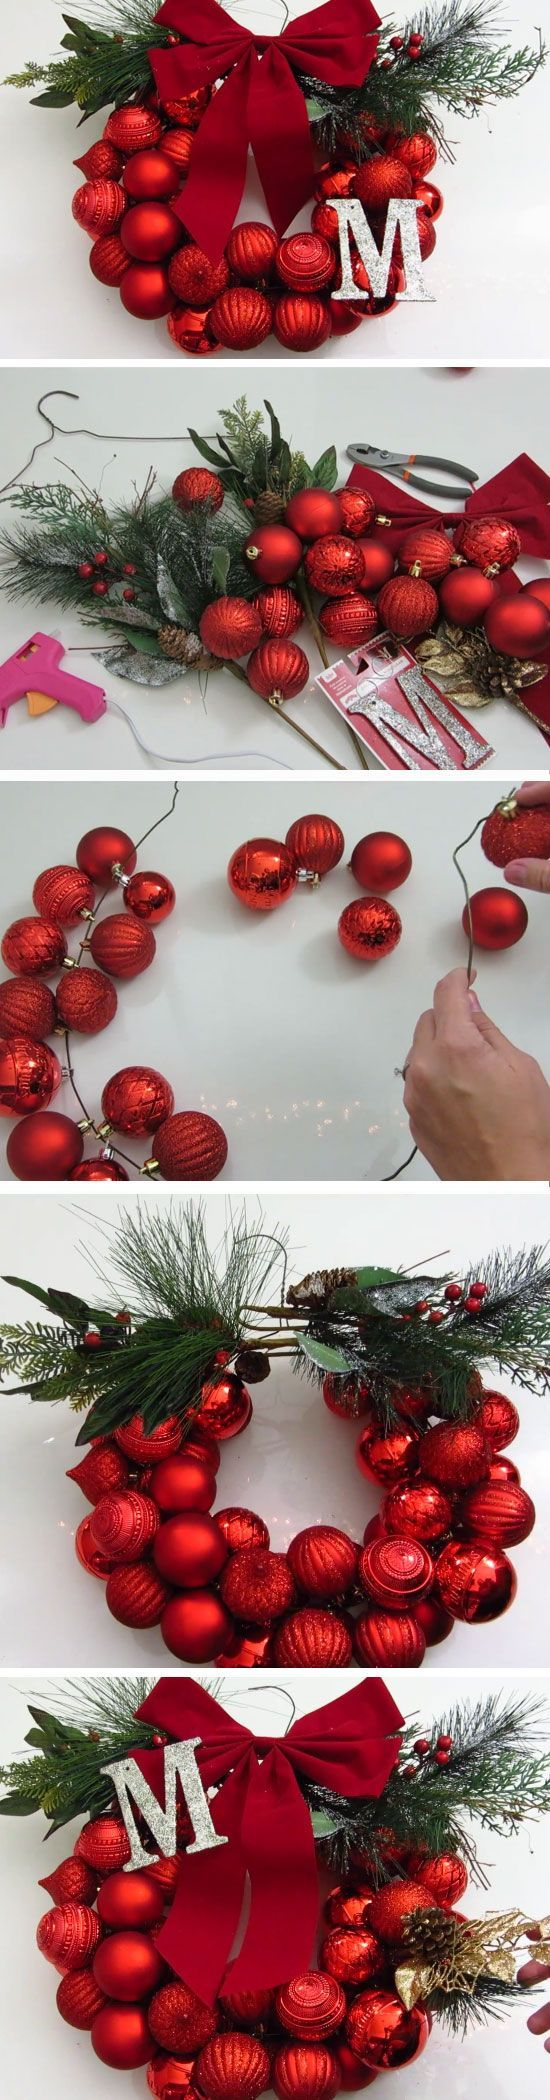 diy christmas wreaths that will spread the festive cheer